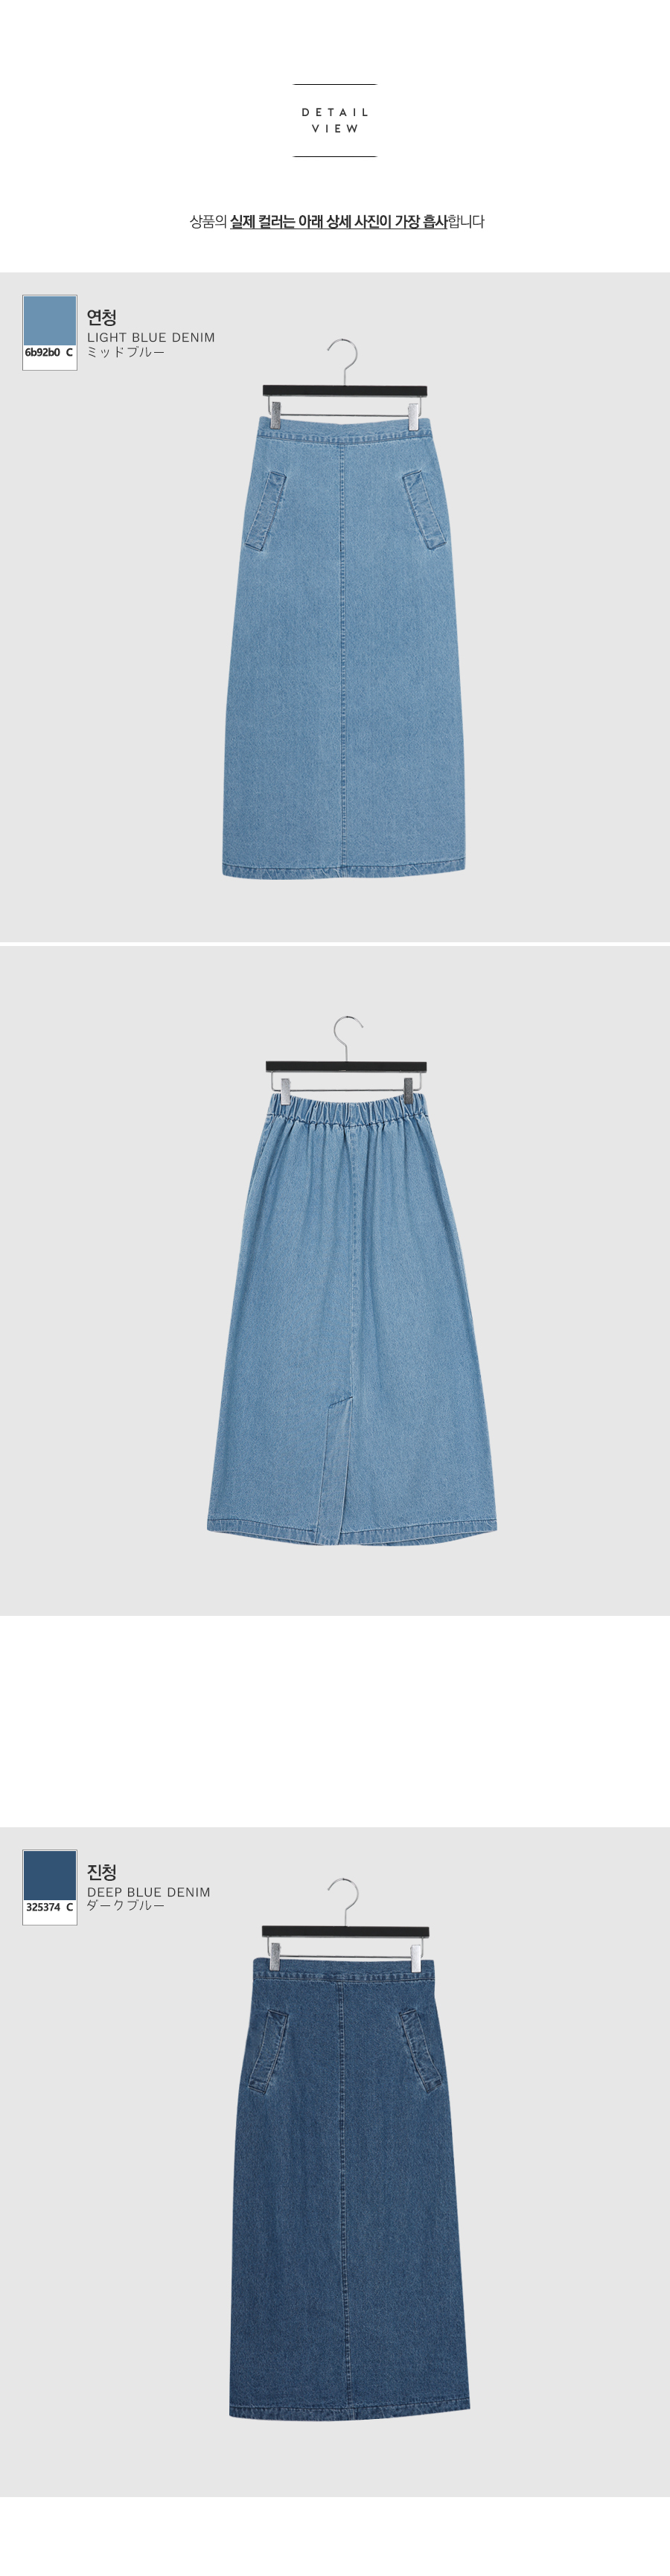 Pocket hedge denim skirt